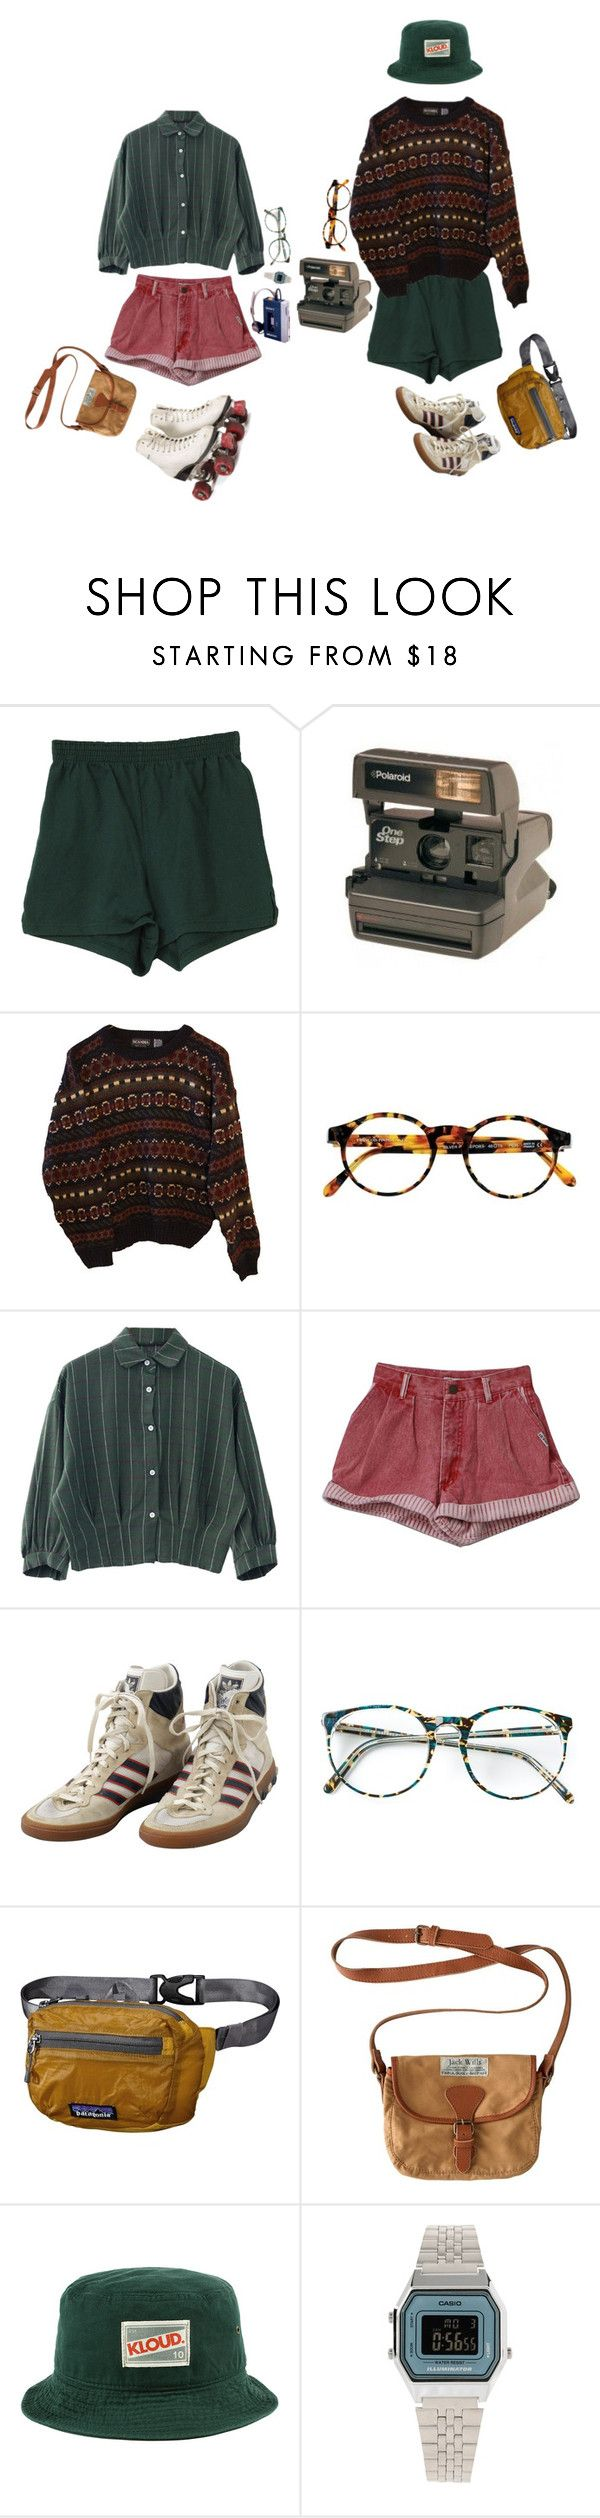 """Retro kids"" by mel0ody ❤ liked on Polyvore featuring Polaroid, INDIE HAIR, François Pinton, adidas, Patagonia, Jack Wills and Casio"